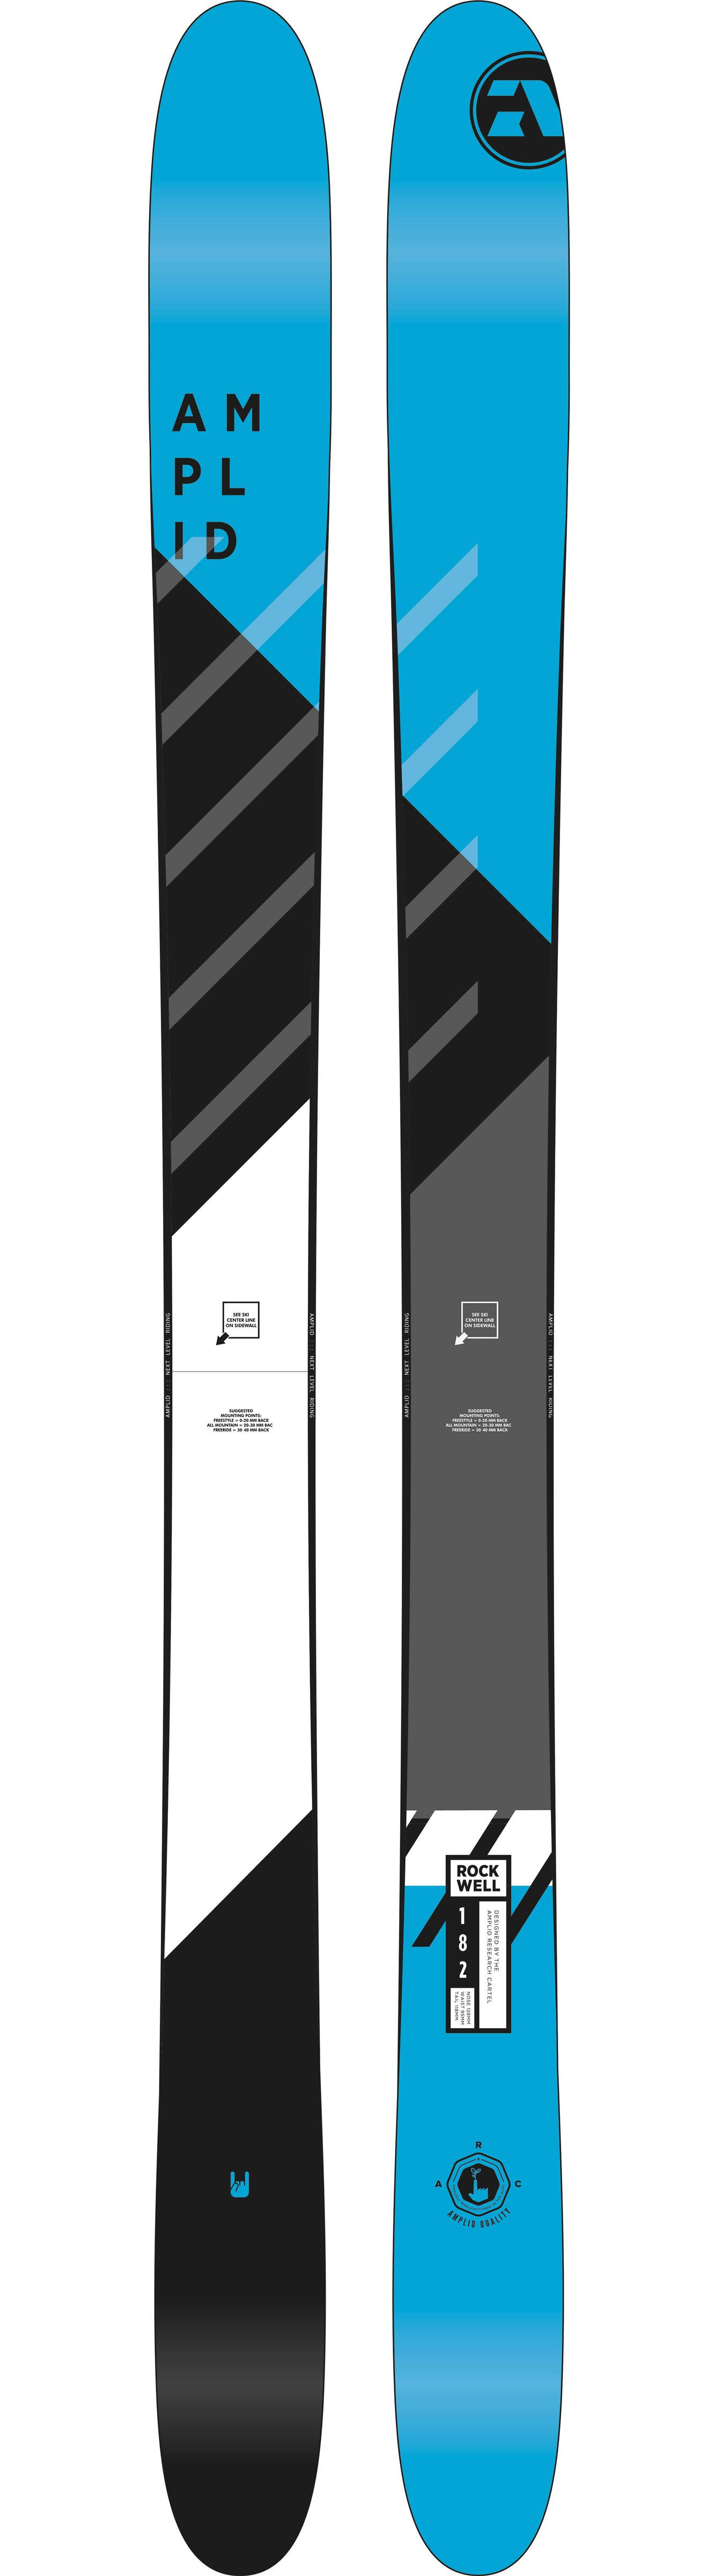 10 Great All Mountain Skis | Snow+Rock